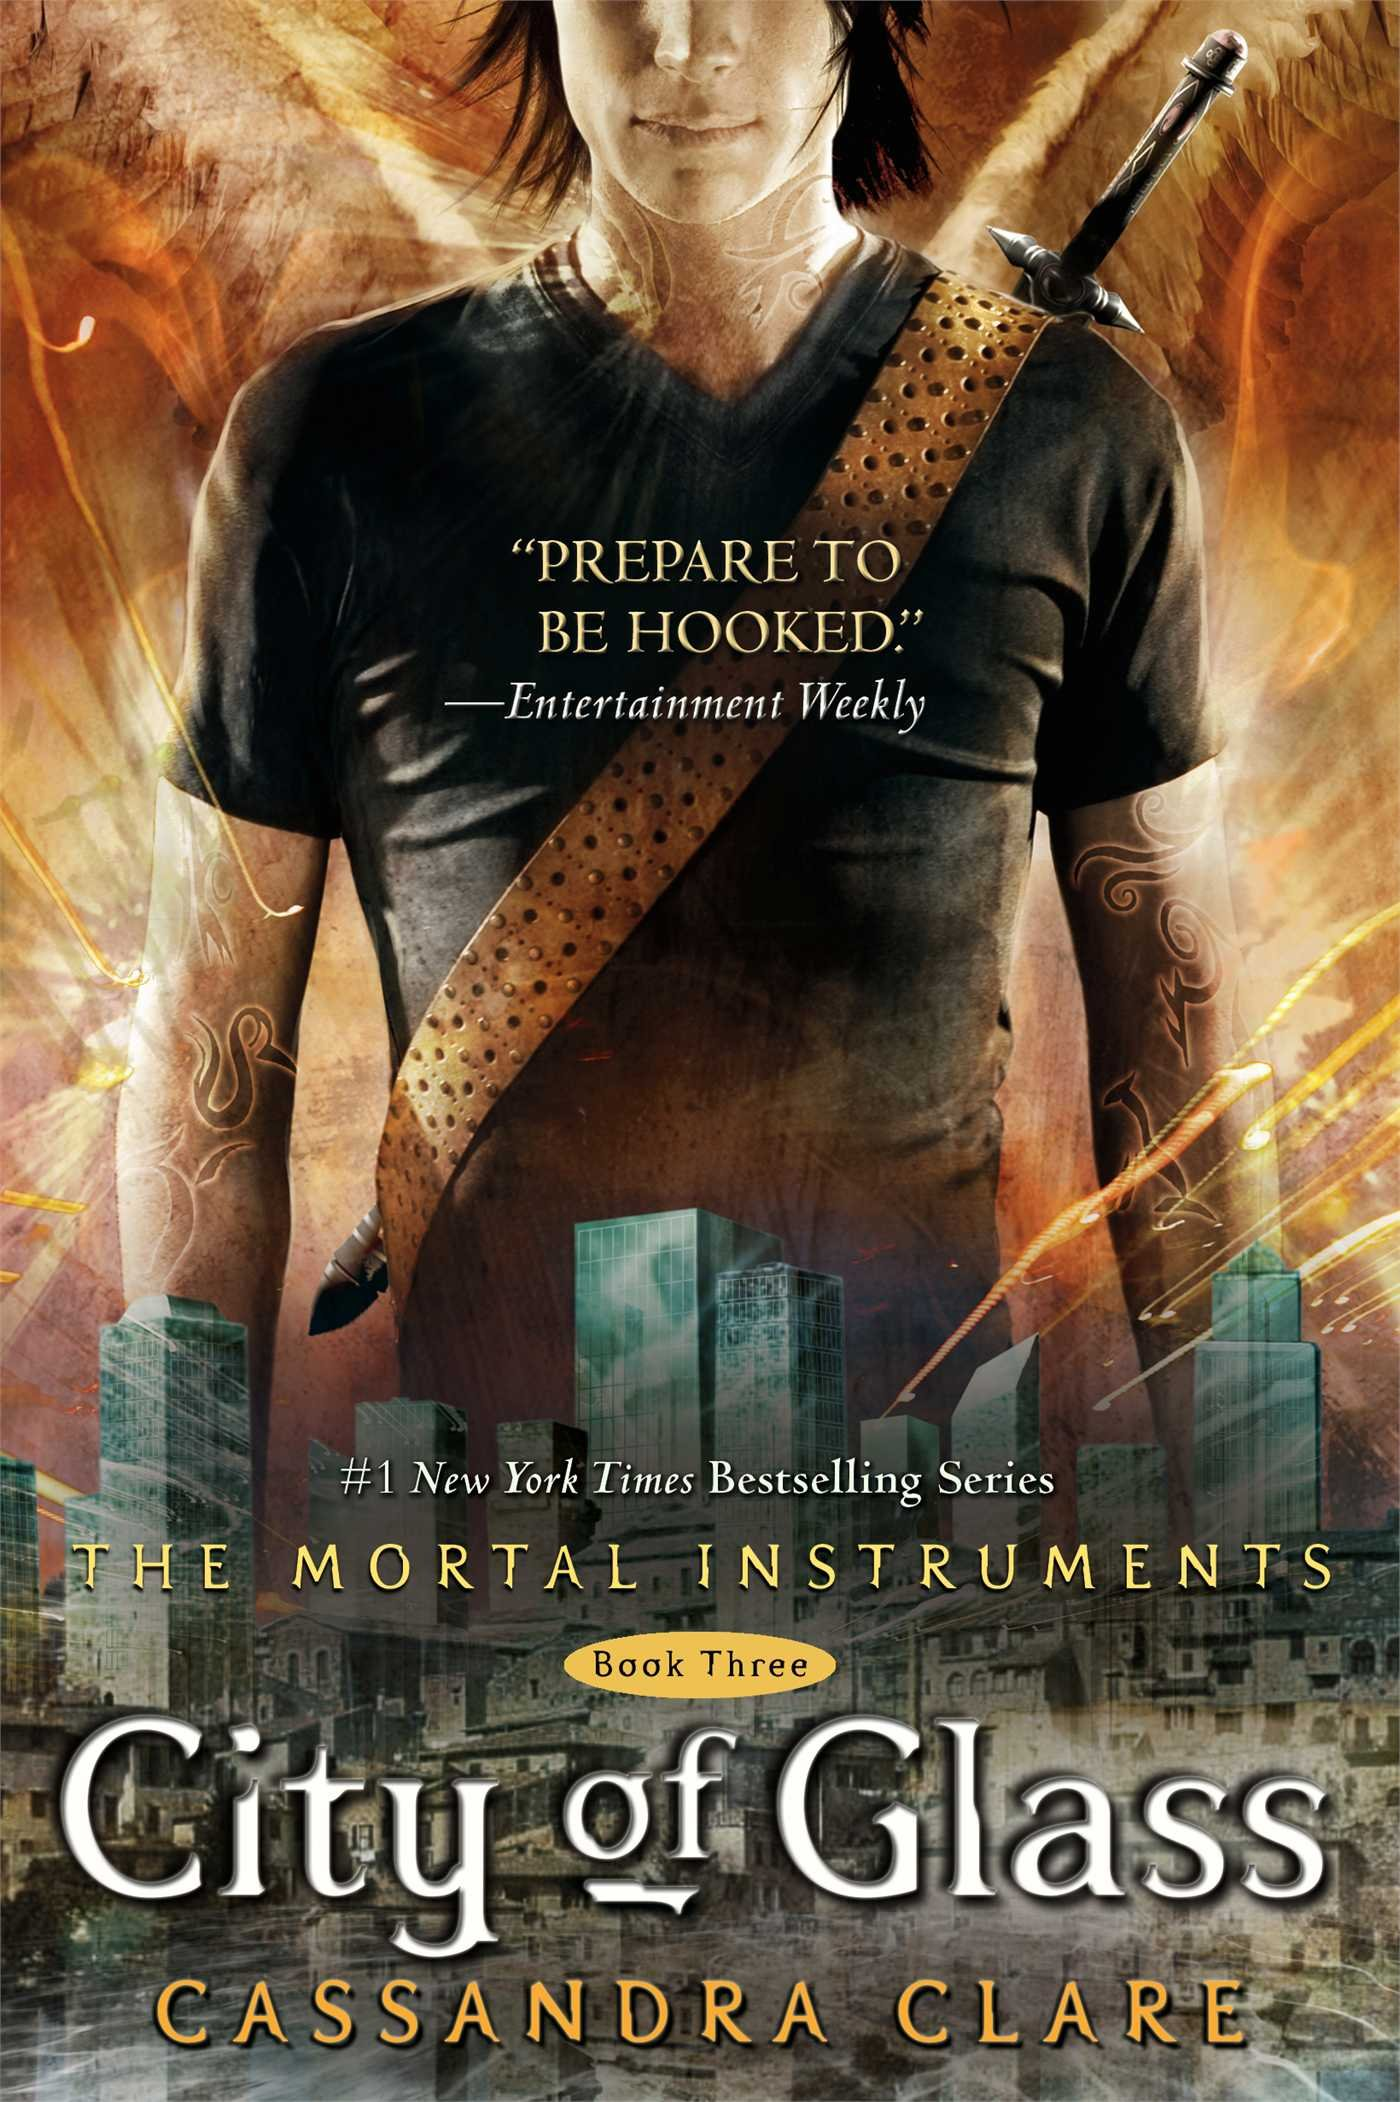 City of Glass (The Mortal Instruments, Book 3)  - Cassandra Clare